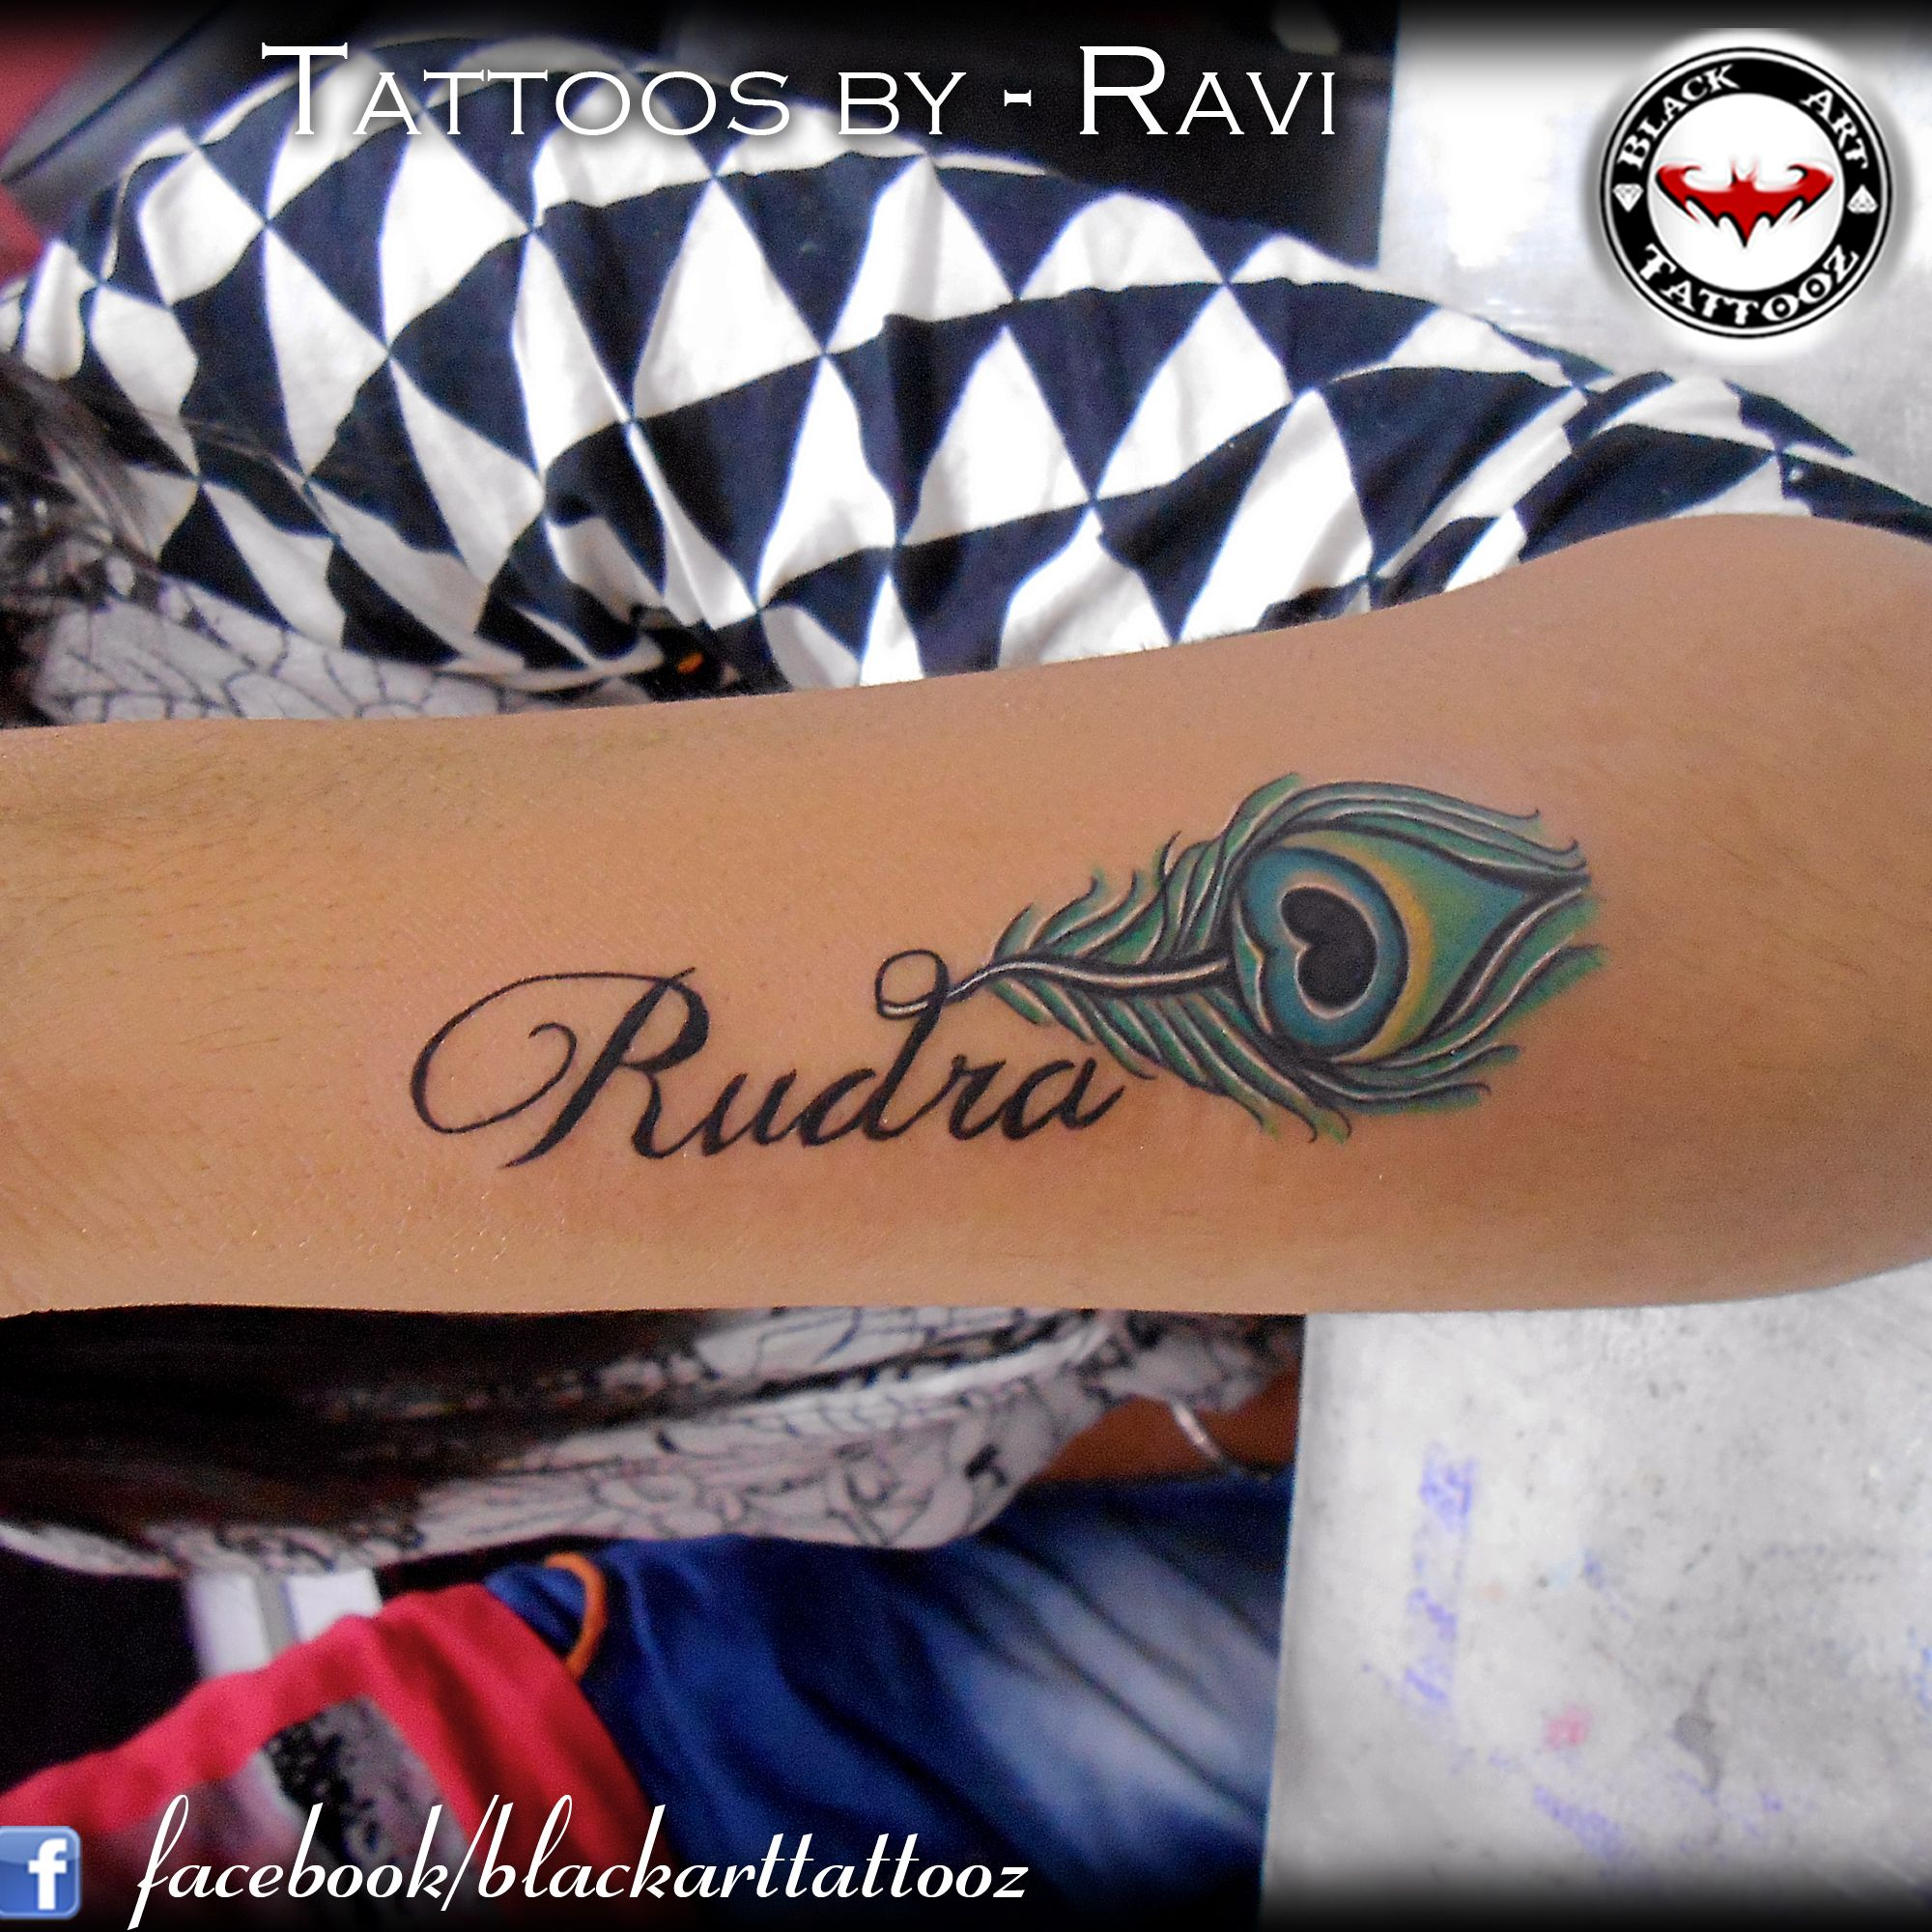 Name With Feather At Black Art Tattooz By Ravi Gohel Tattoo Tattoos Tattooedgirl Tattooing Art Artist Ink Inked Tattoos Red Tattoos Tattoo Images